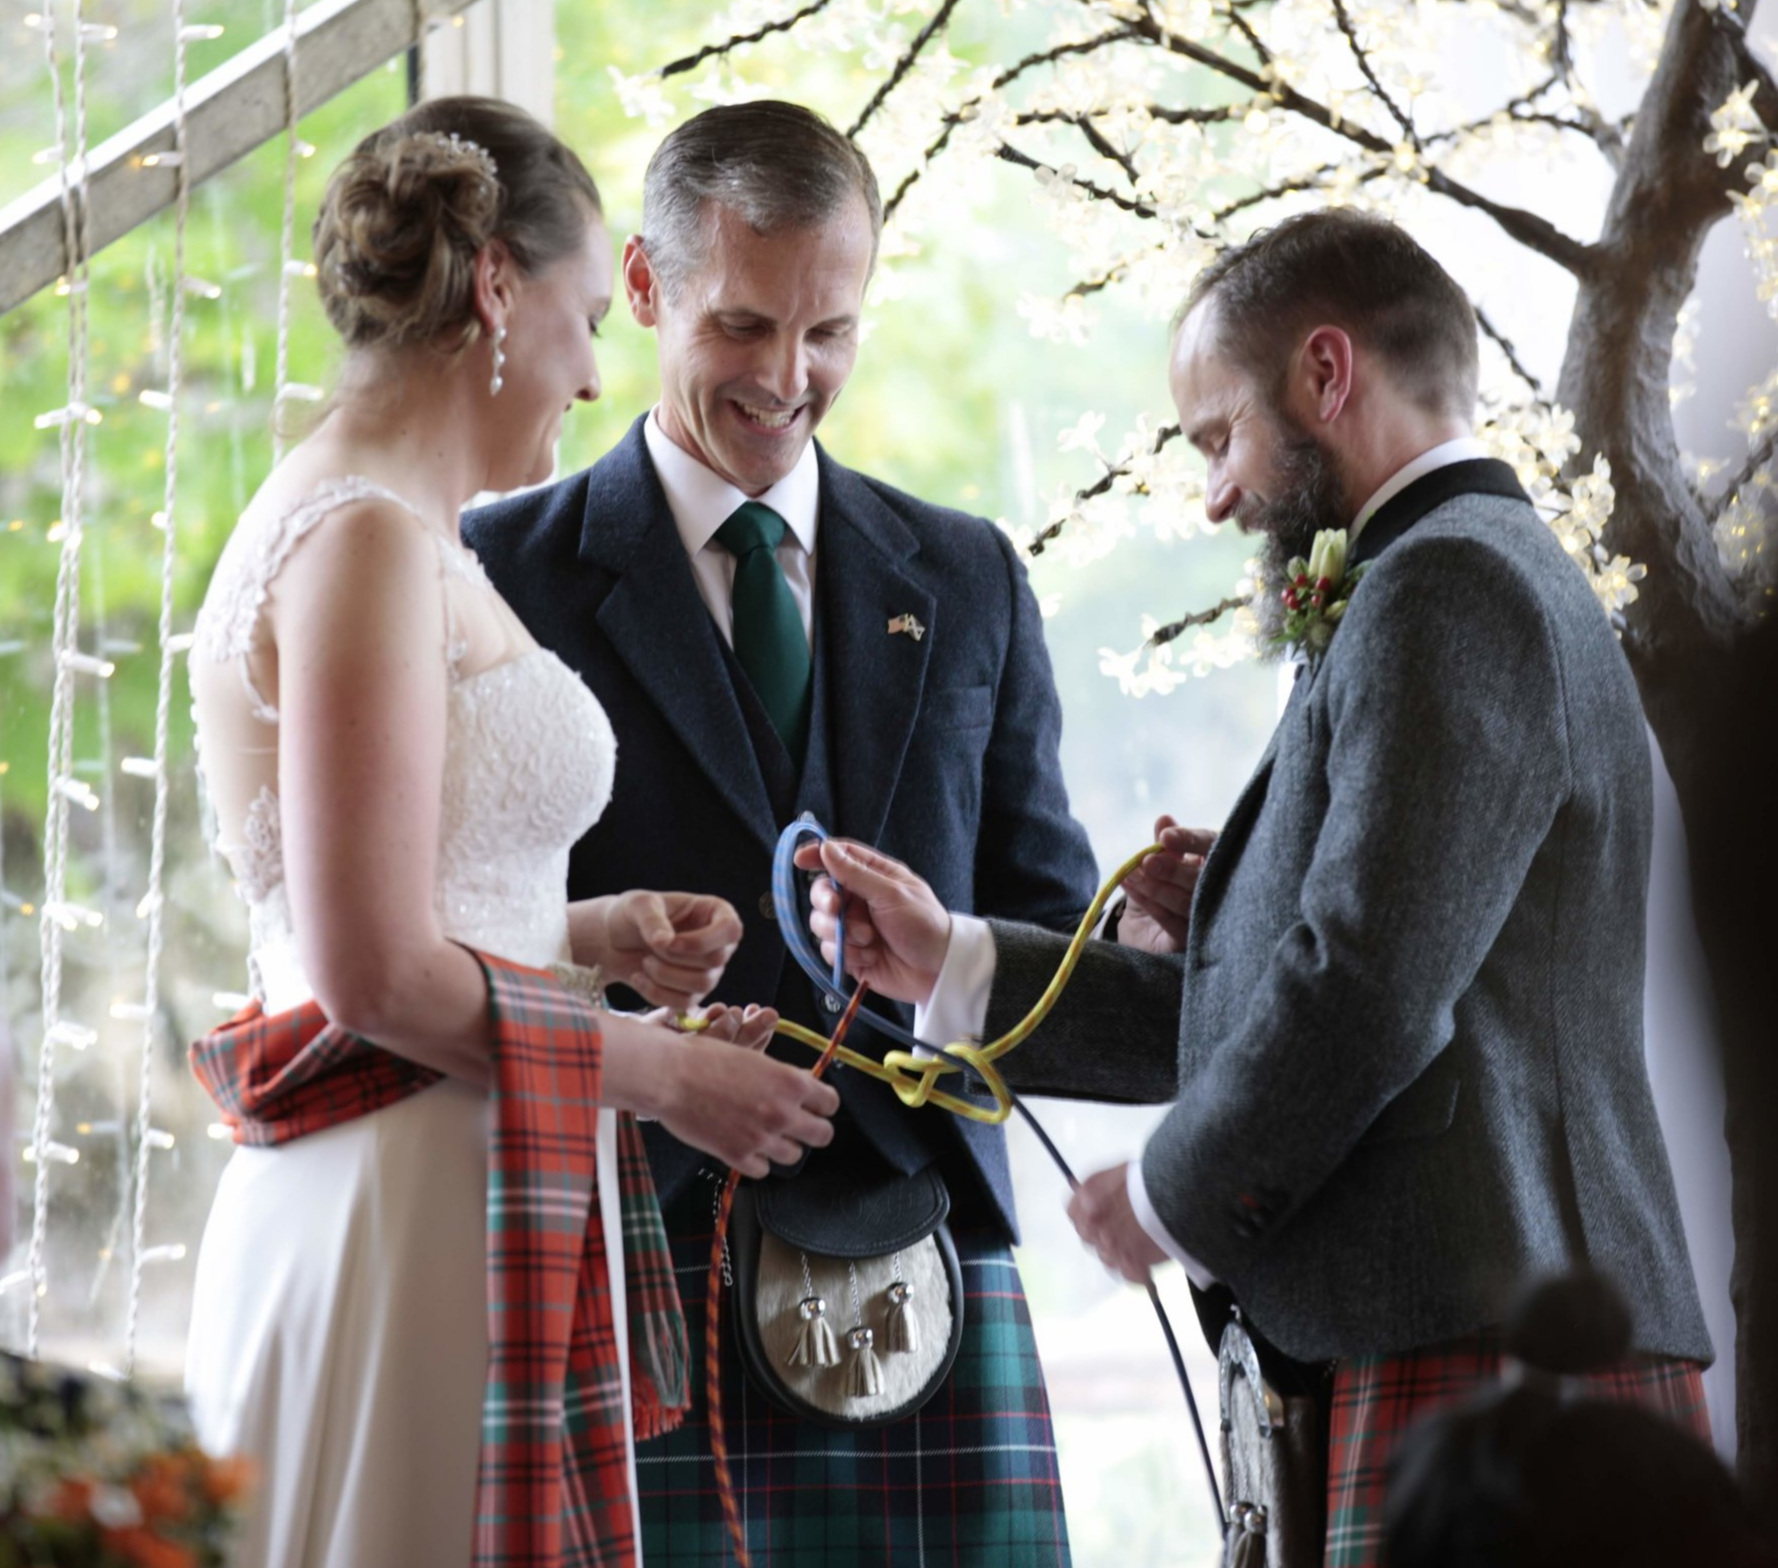 To demonstrate Ecclesiastes 4:9-12, Chris and Marlies Morrison literally tied the knot with three strands of rope as part of their wedding vows.